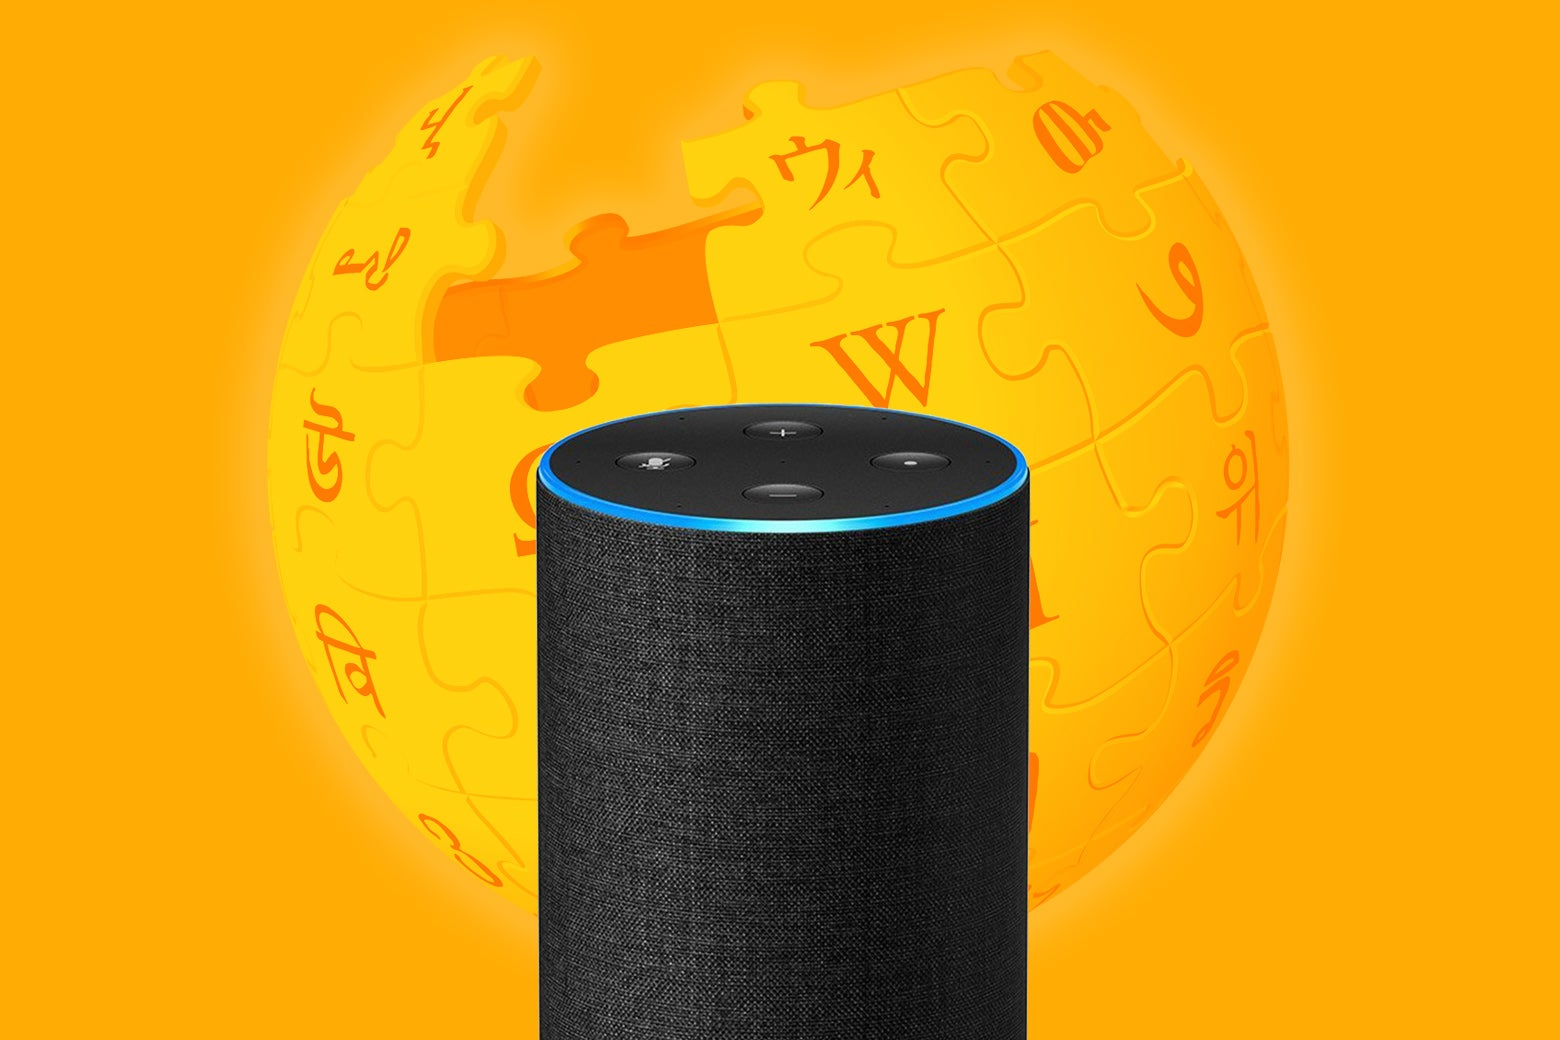 An Amazon Echo device, with the Wikipedia globe logo in the background.